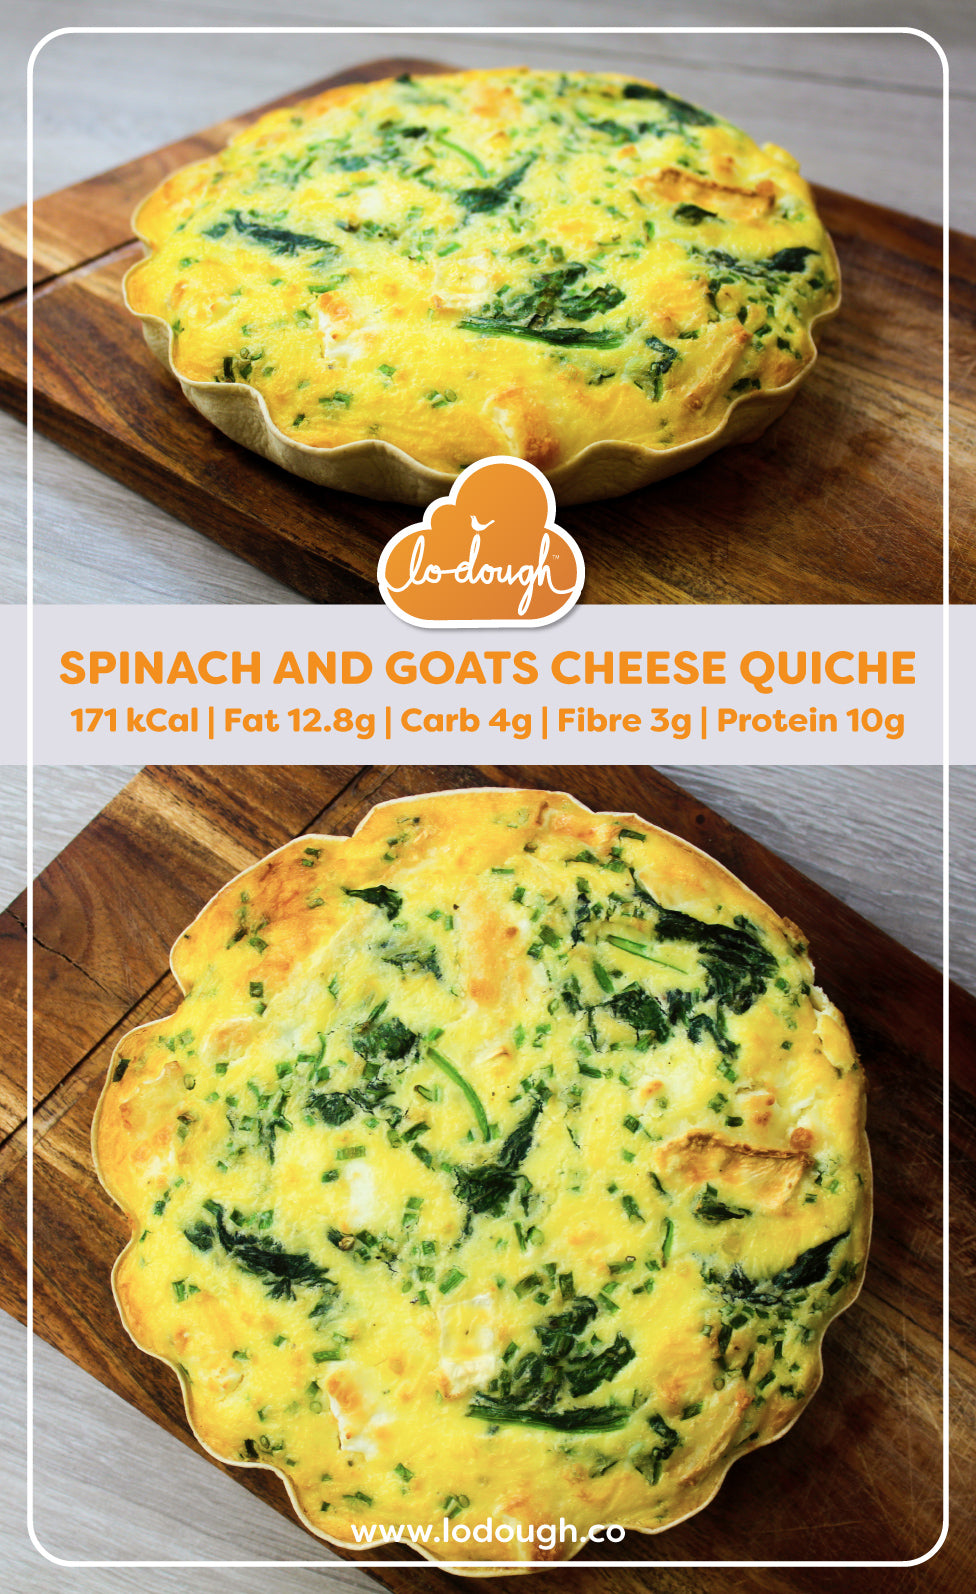 Spinach & Goats Cheese Quiche